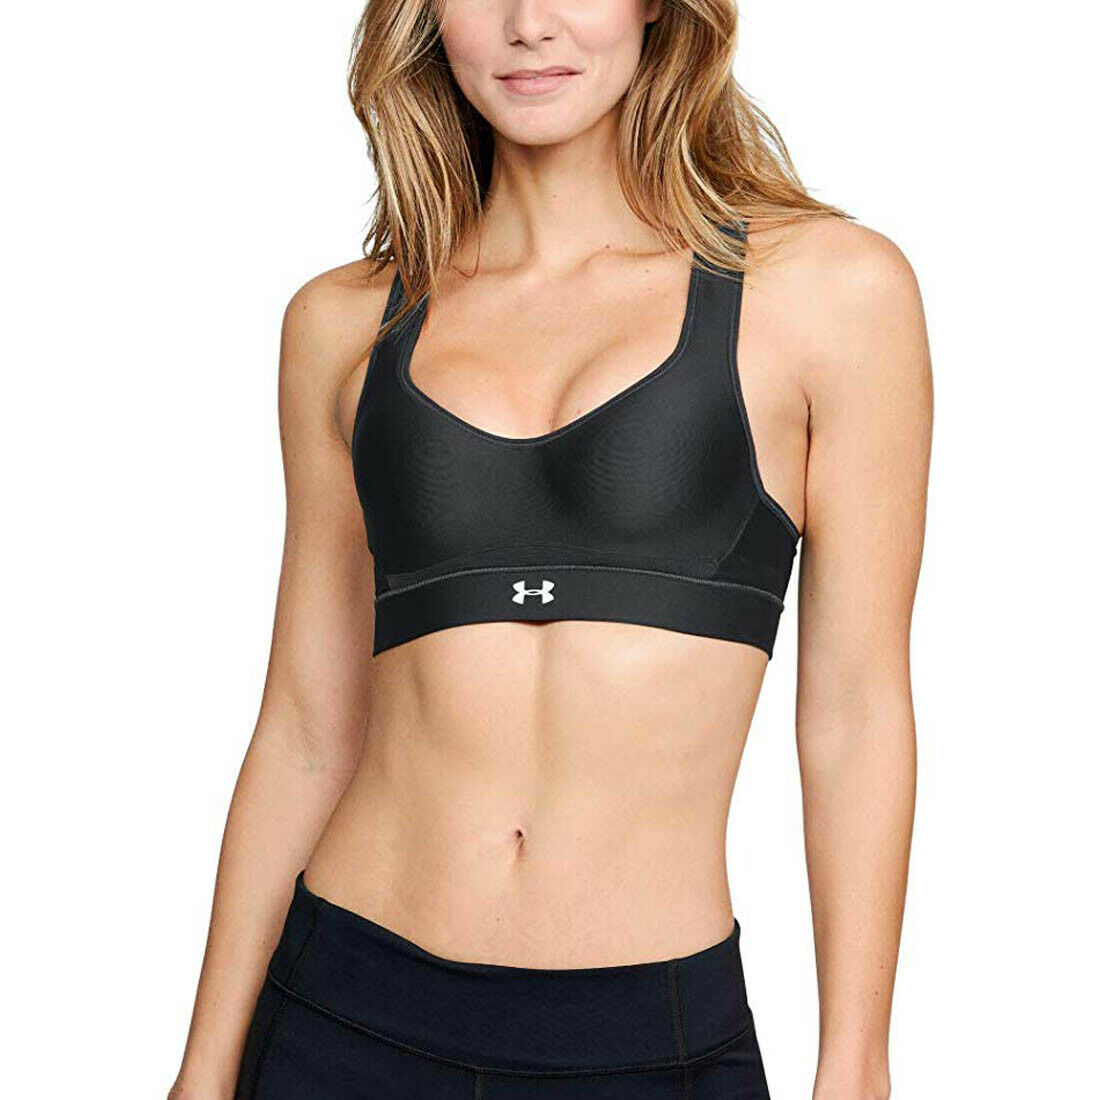 Primary image for Under Armour Warp Knit High Impact Sports Bra, Black (001)/Reflective, 34DD